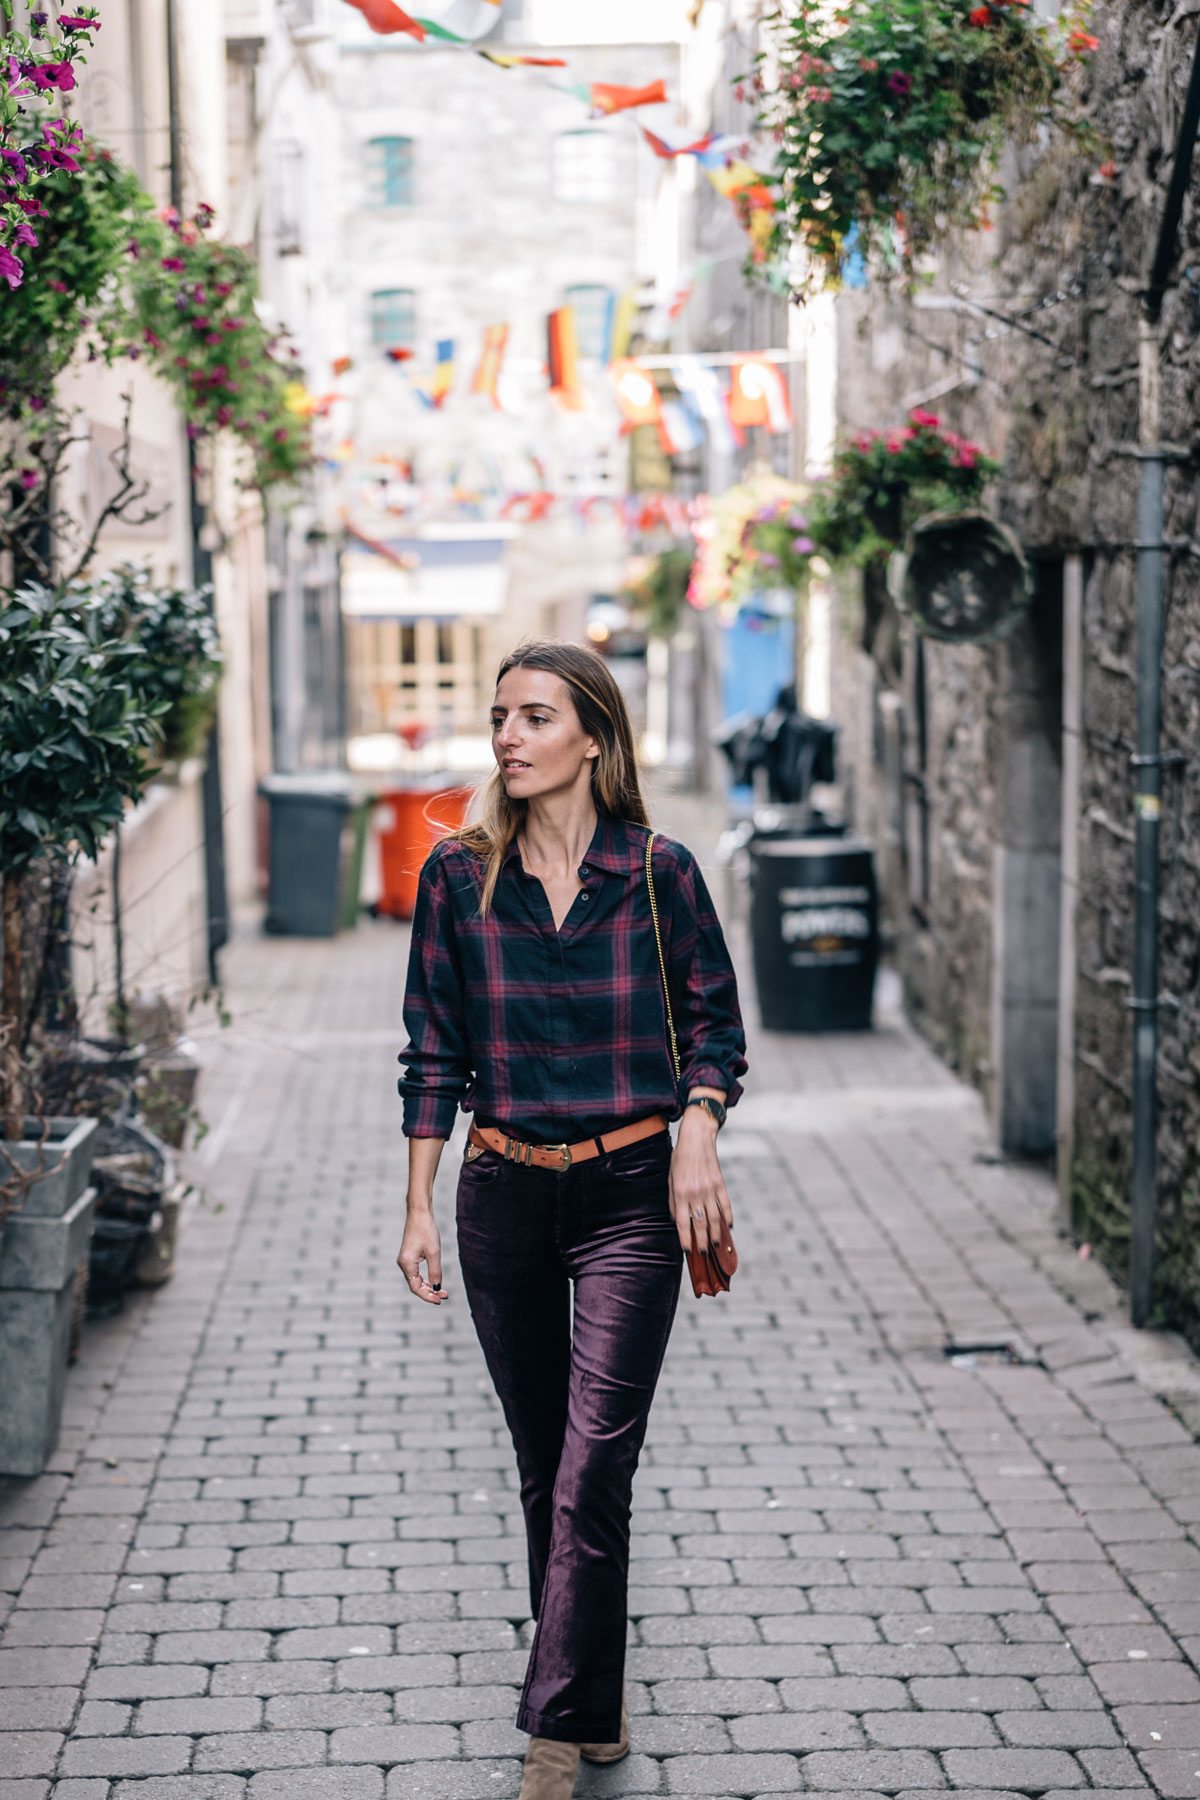 Jess Ann Kirby wears Paige Denim Velvet Cropped Flare pants and Plaid Button Down in Galway, Ireland